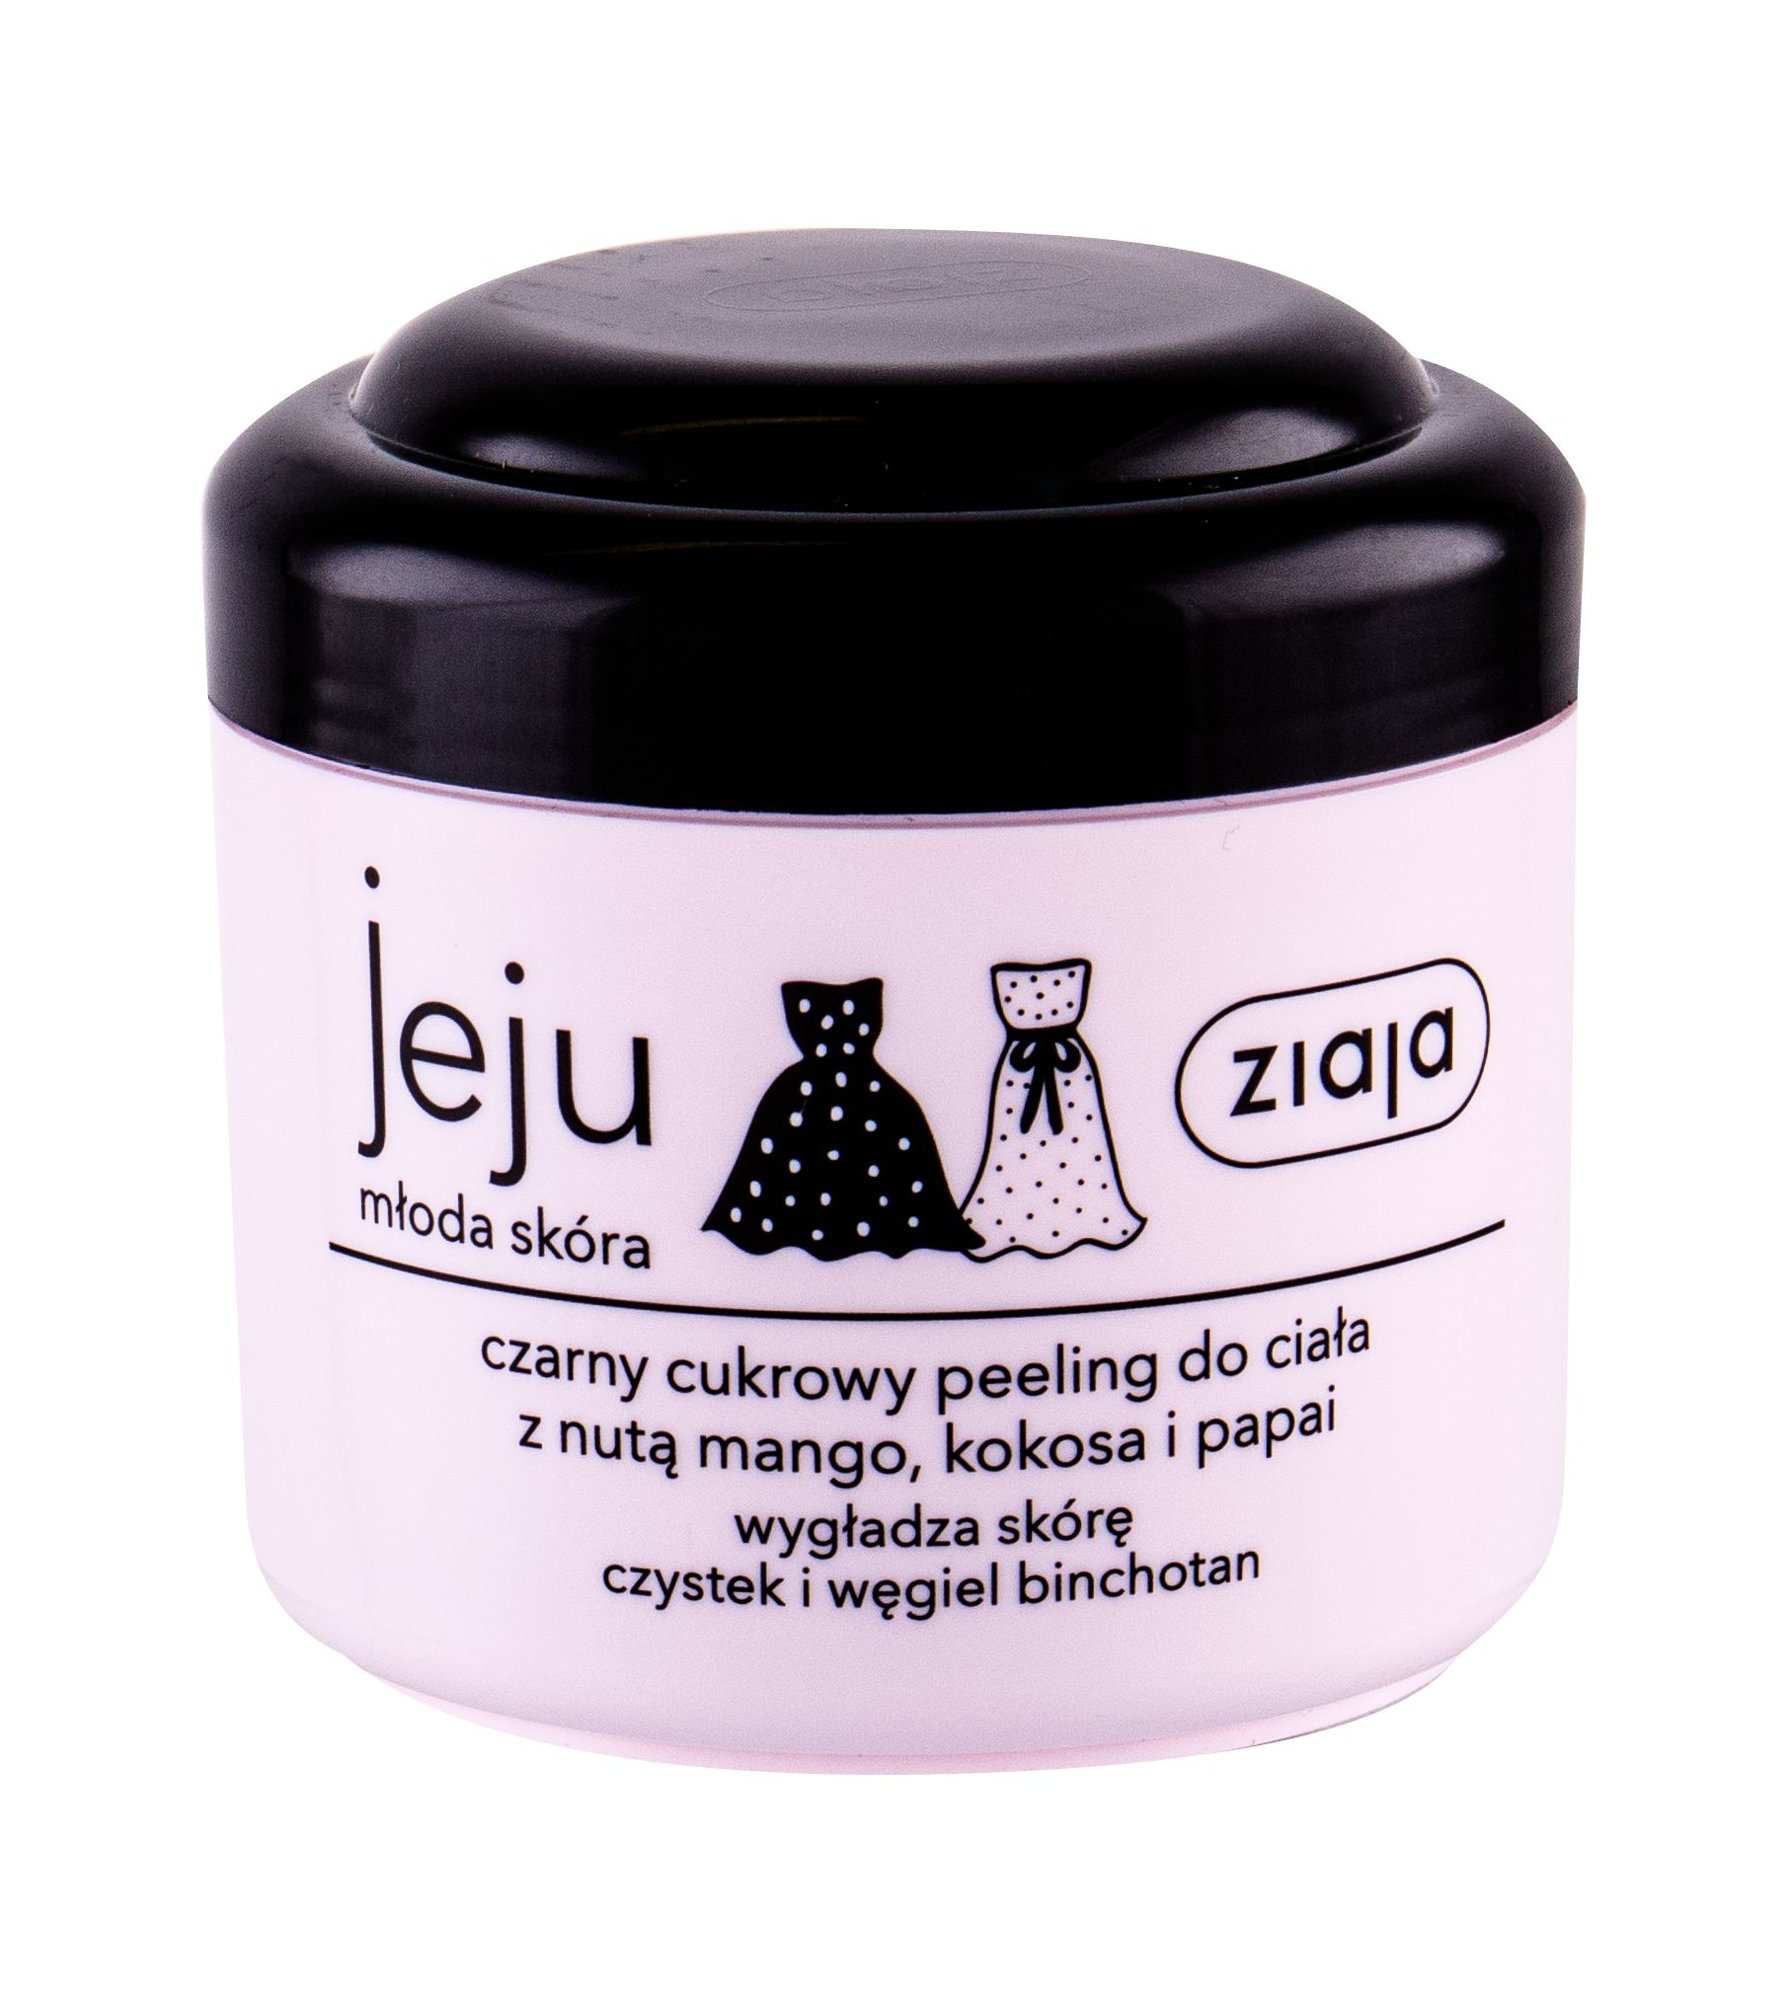 Ziaja Jeju Body Peeling 200ml